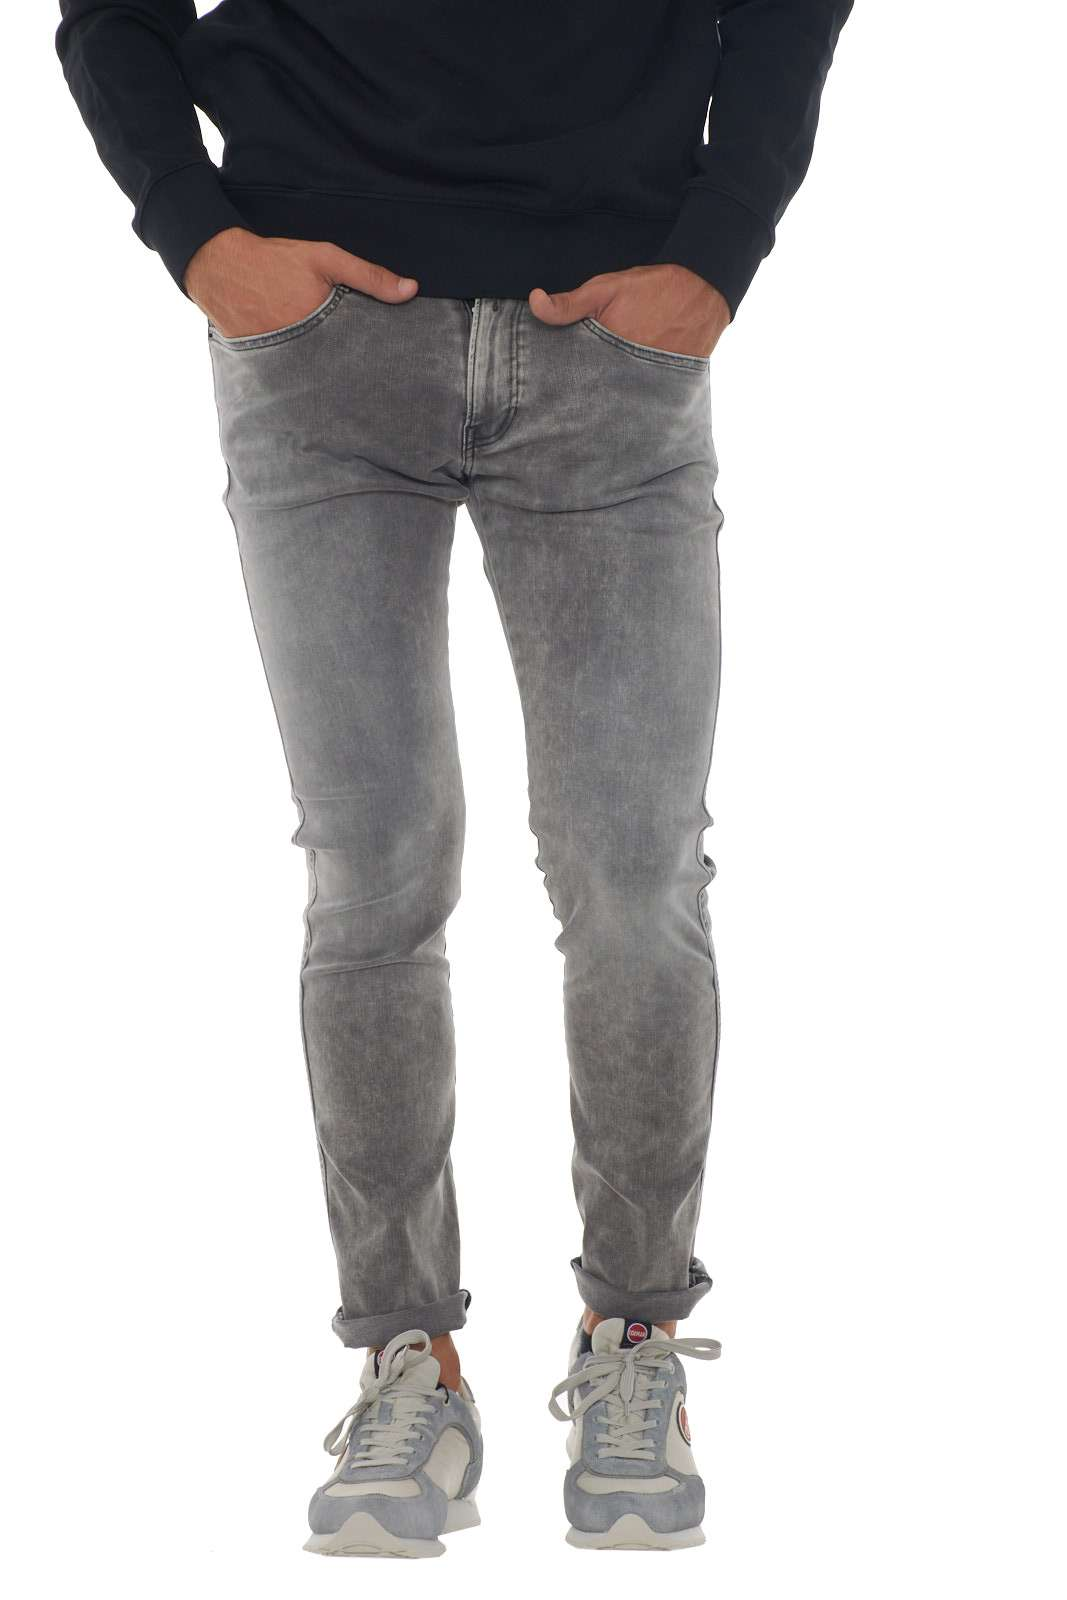 https://www.parmax.com/media/catalog/product/a/i/AI-Outlet-Parmax-Pantalone-Uomo-Replay-M91400066107B-A.jpg